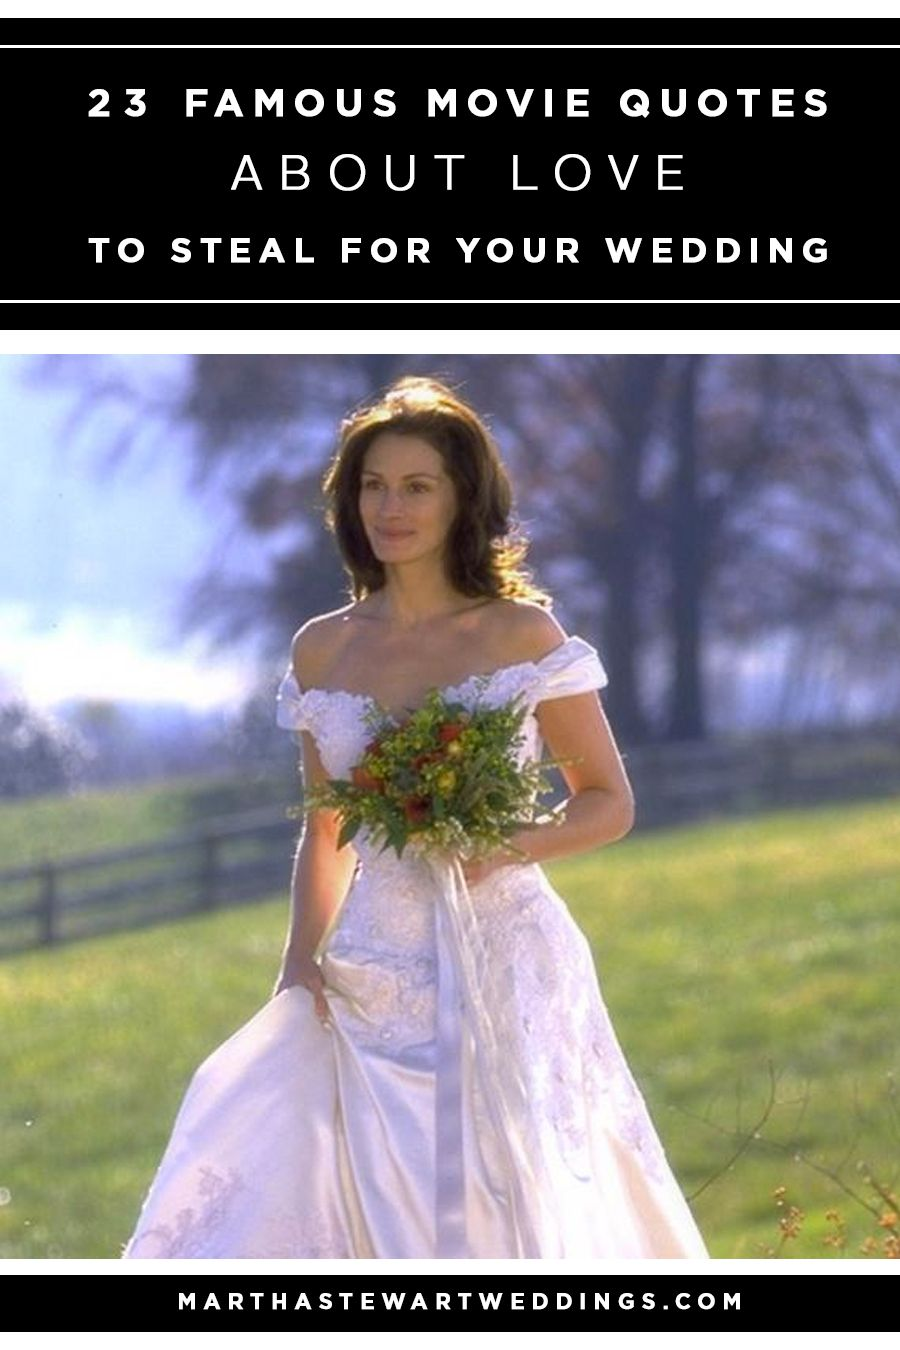 23 Famous Movie Quotes About Love To Steal For Your Wedding Vows